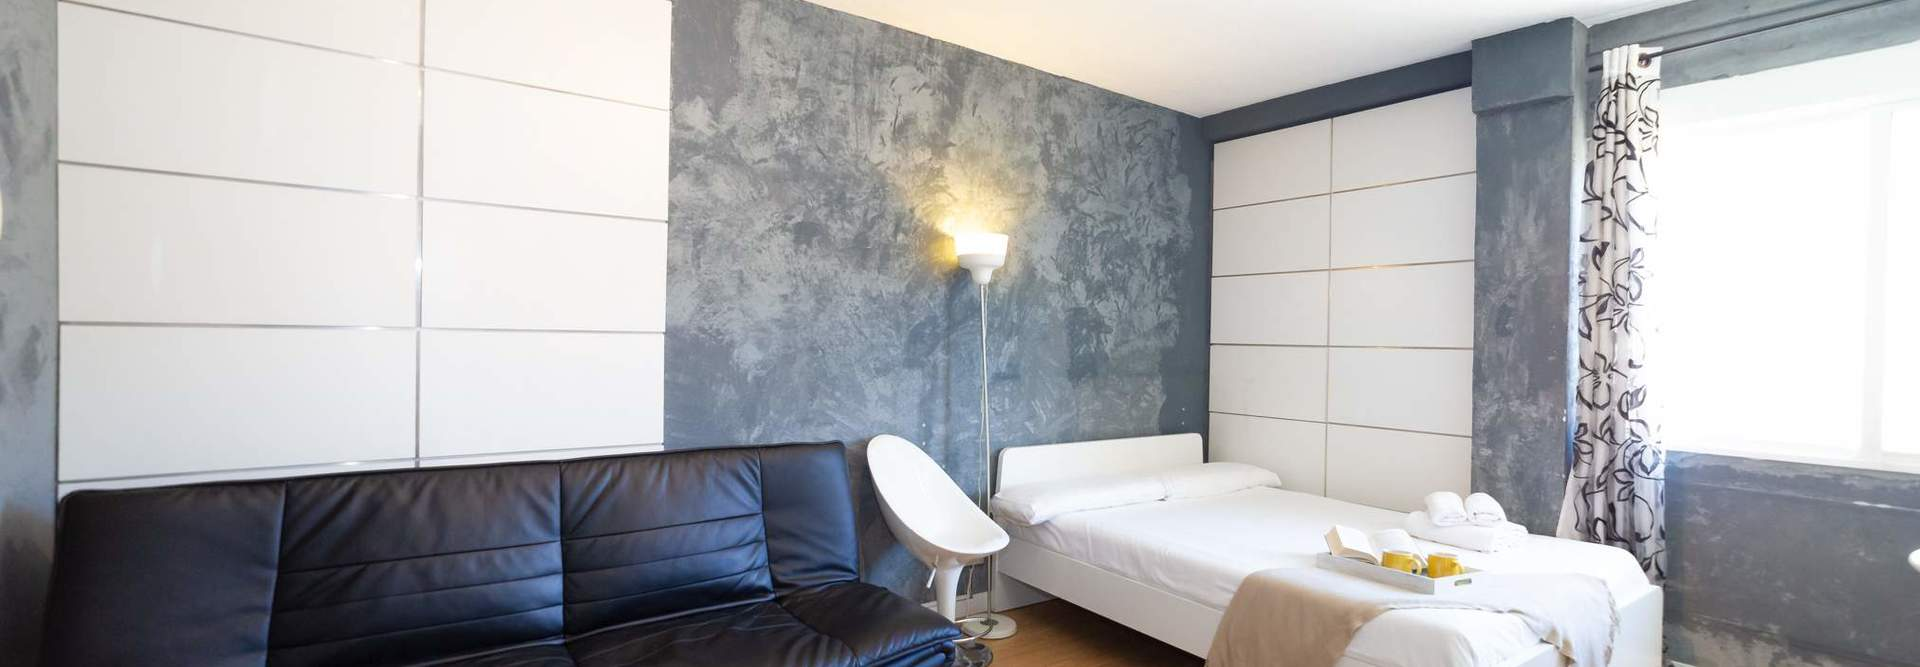 Home alquiler apartamentos madrid mad4rent 43